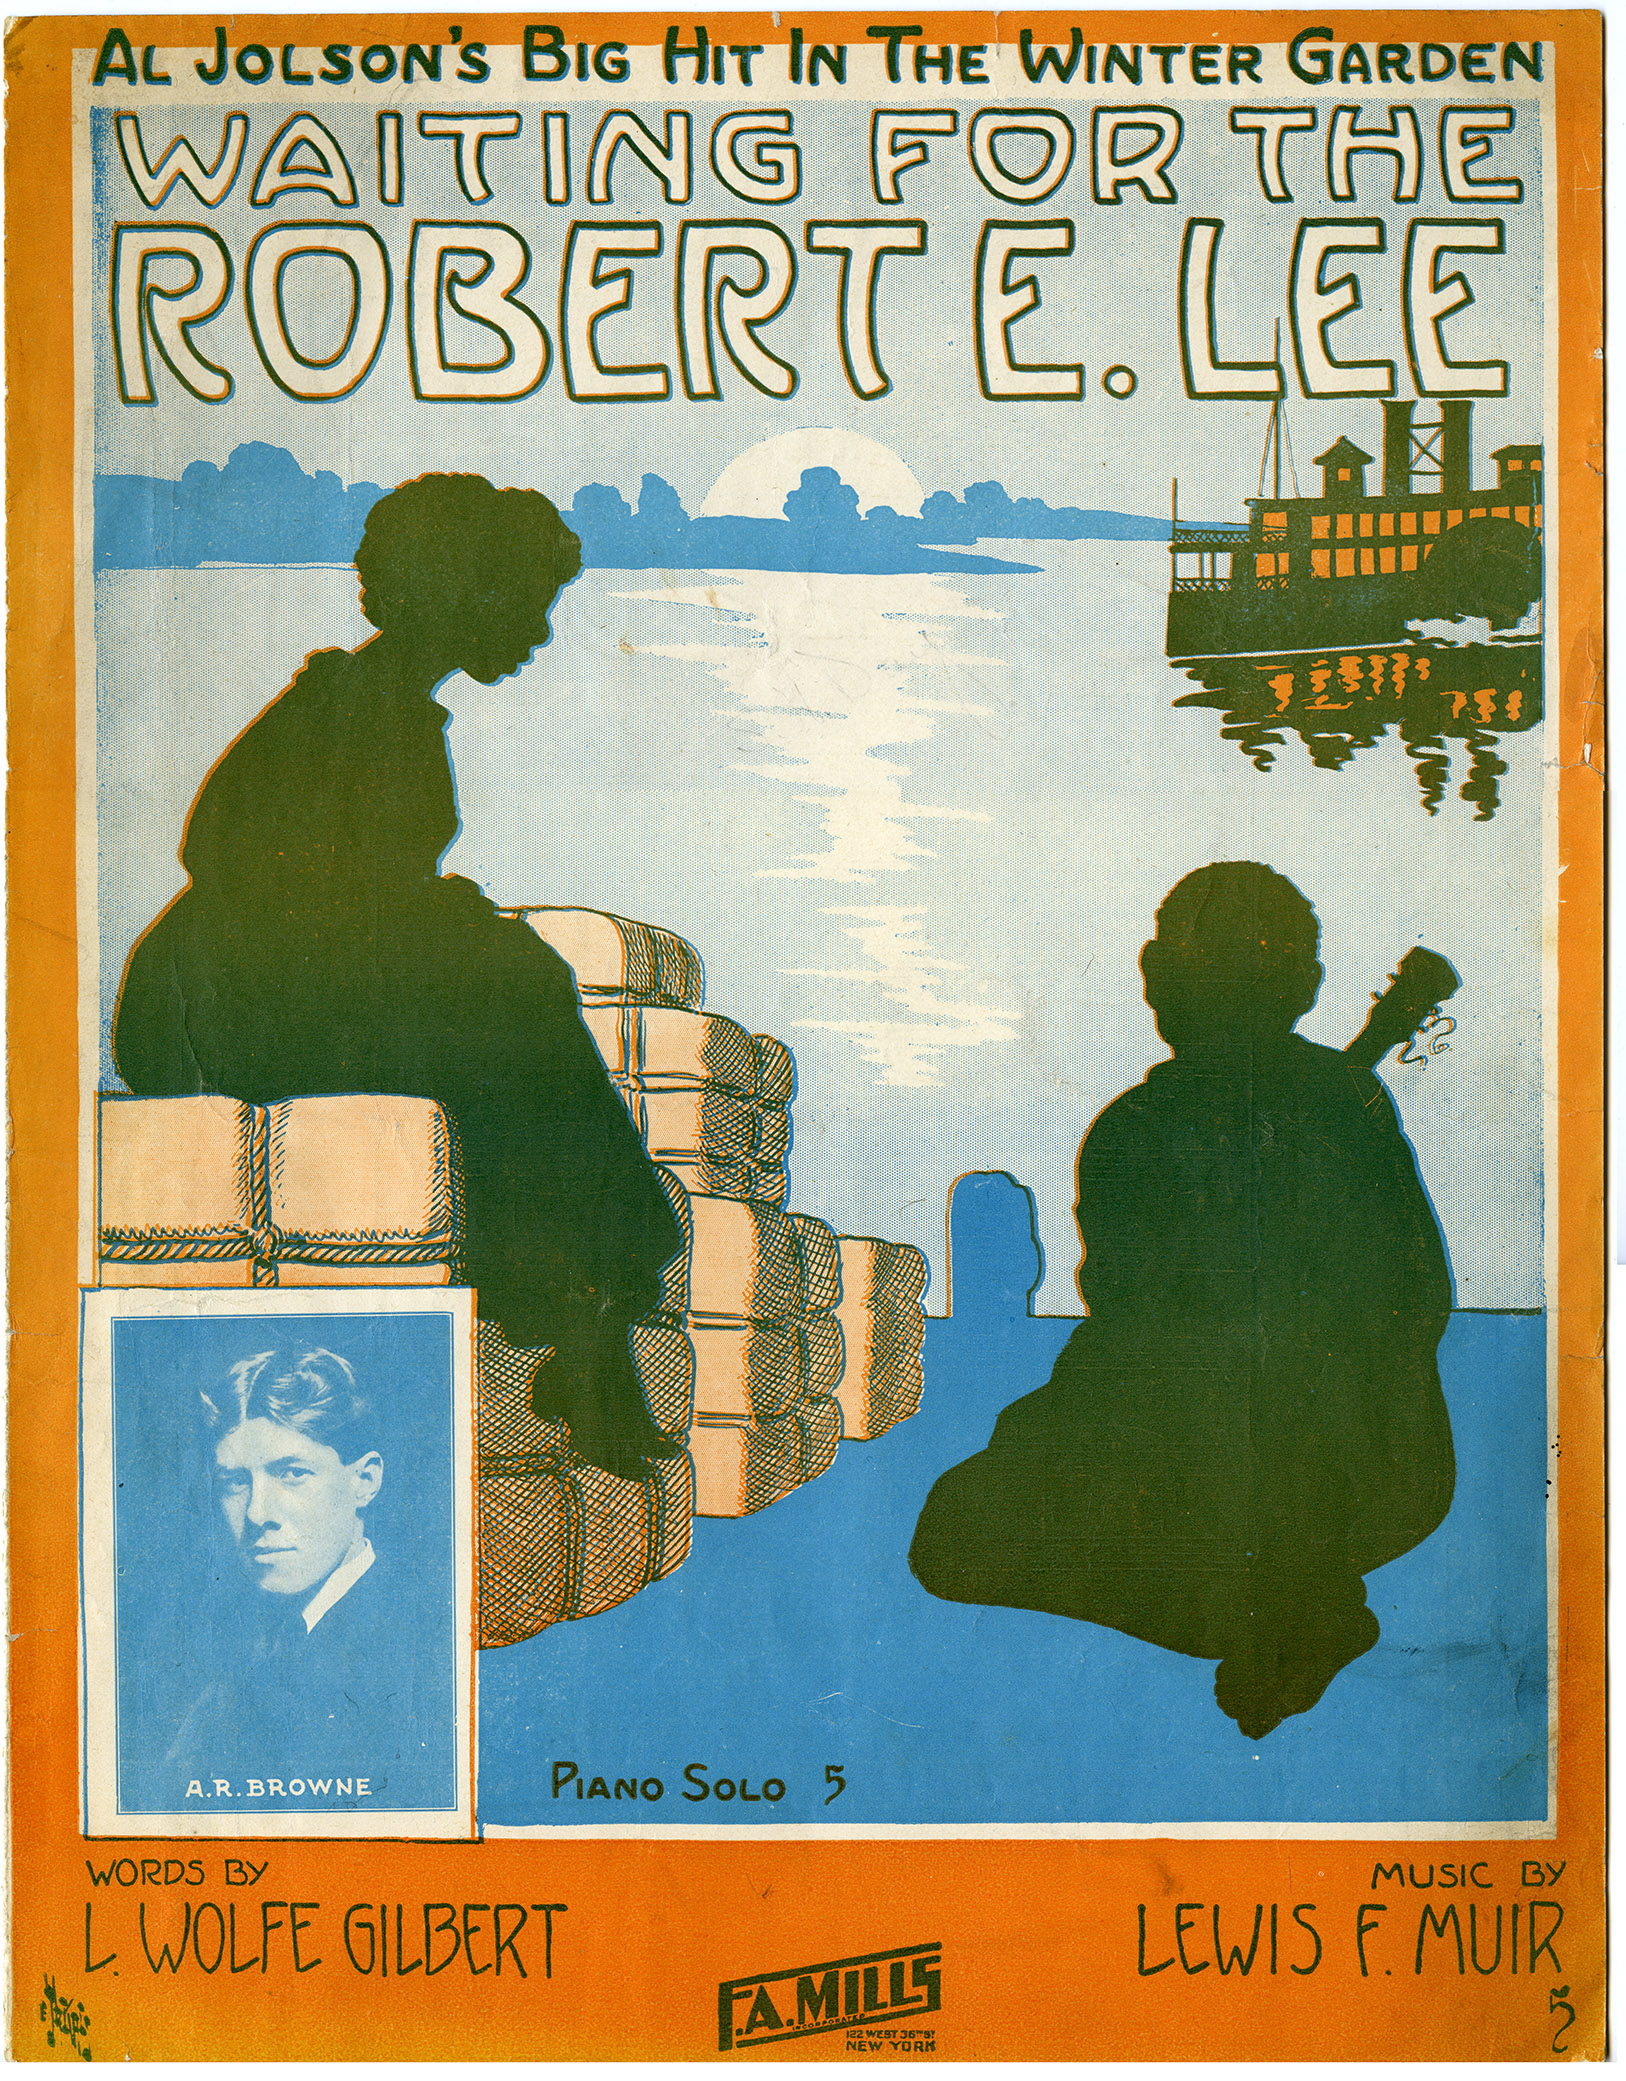 Illustrated Sheet Music Collection image